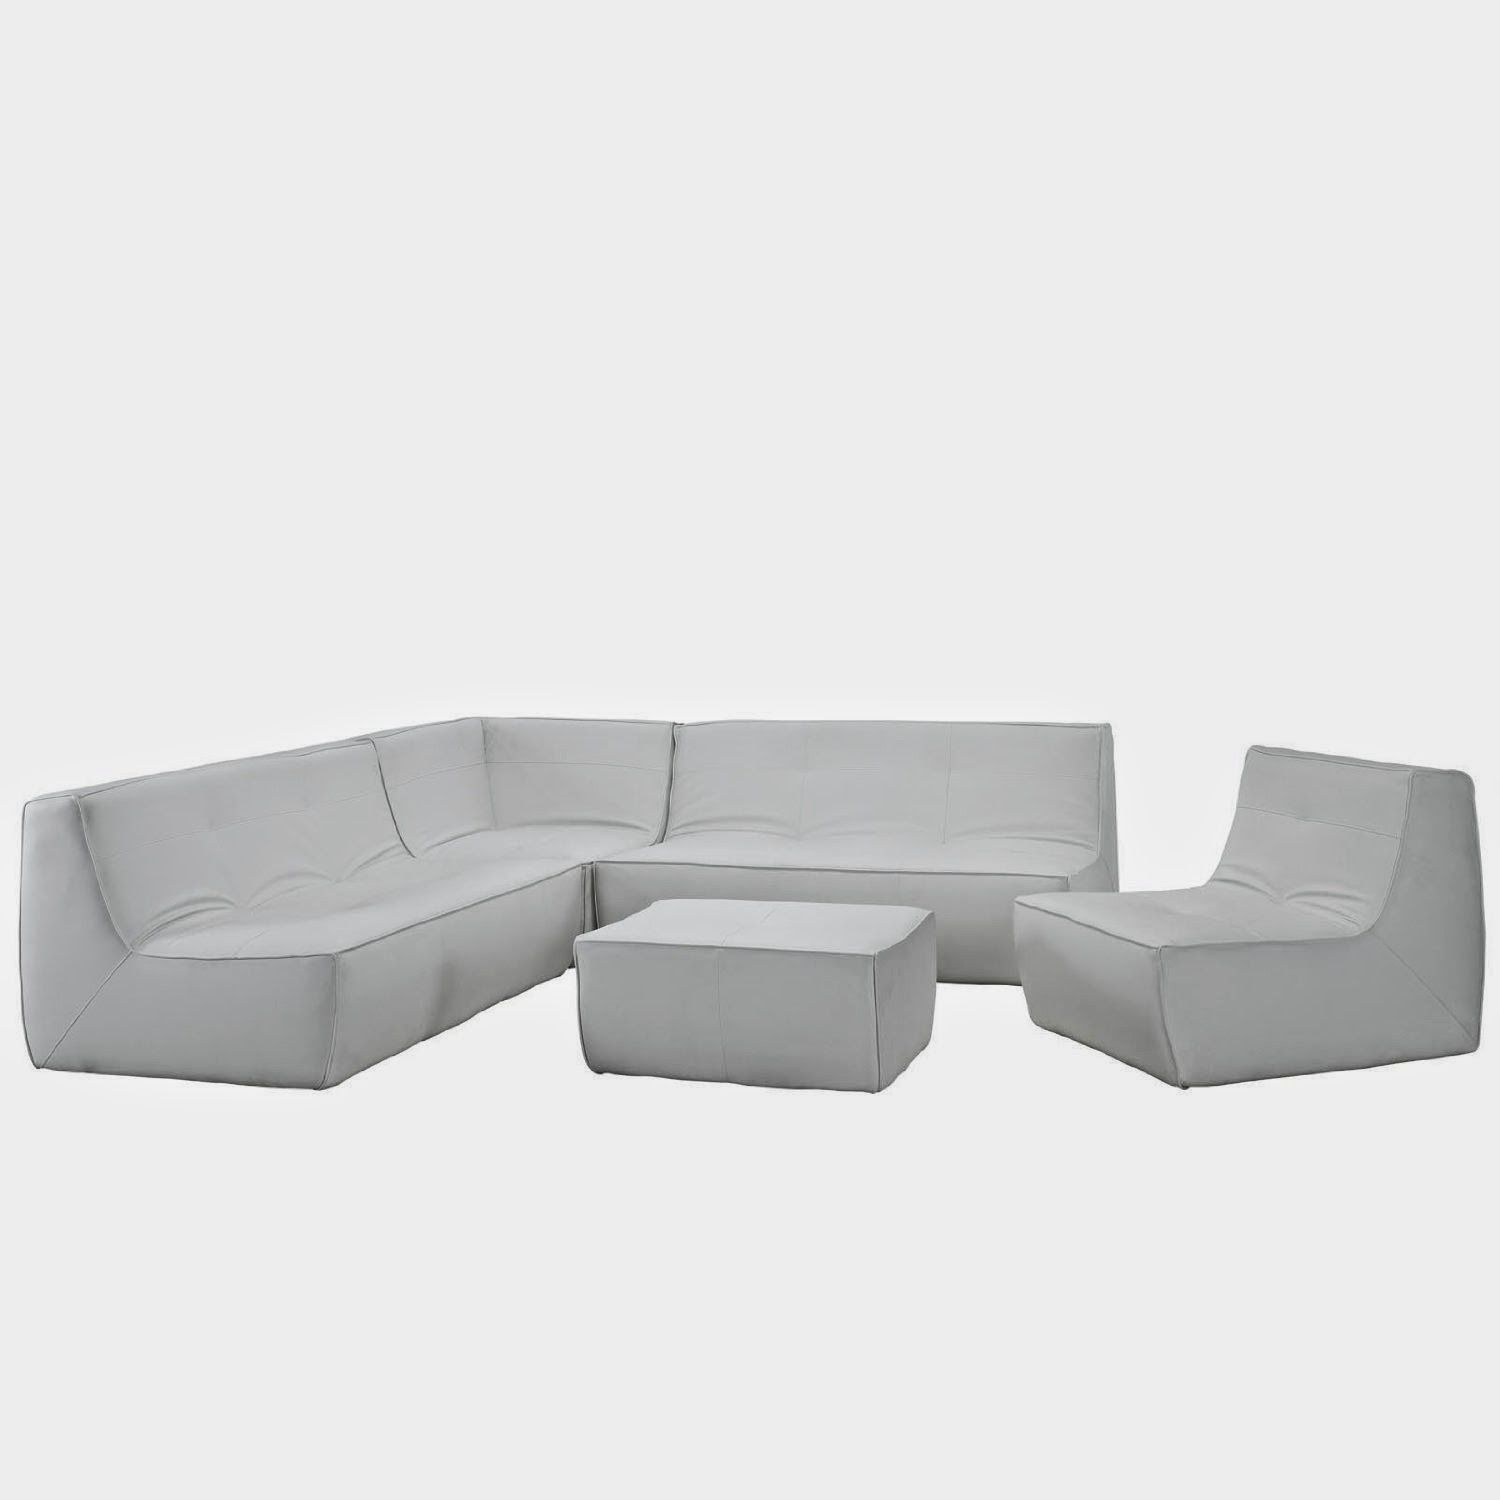 fresh curved leather sofa architecture-Incredible Curved Leather sofa Wallpaper